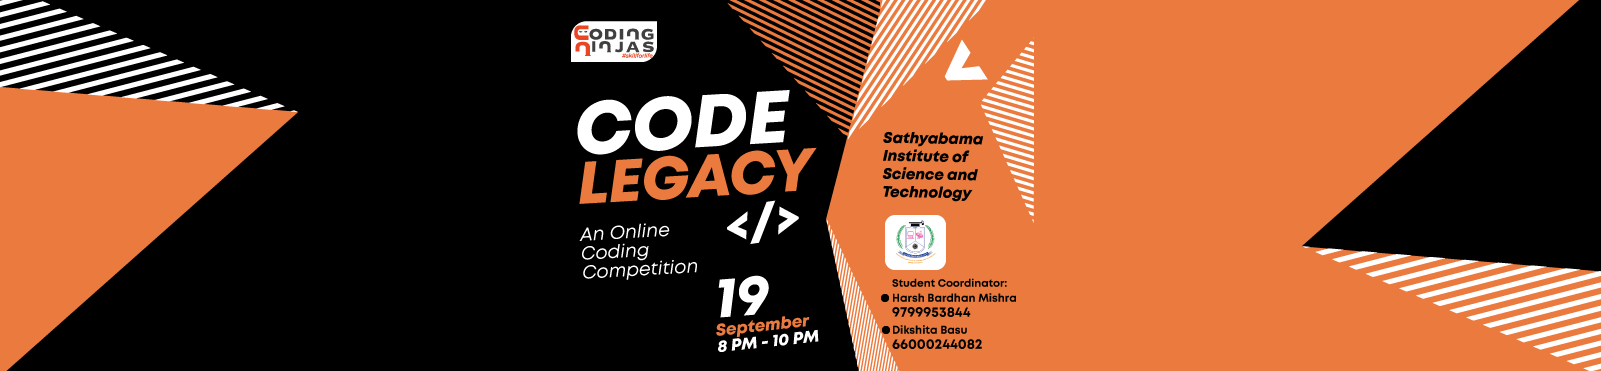 "Code Legacy at ""Sathyabama Institute of Science and Technology"""